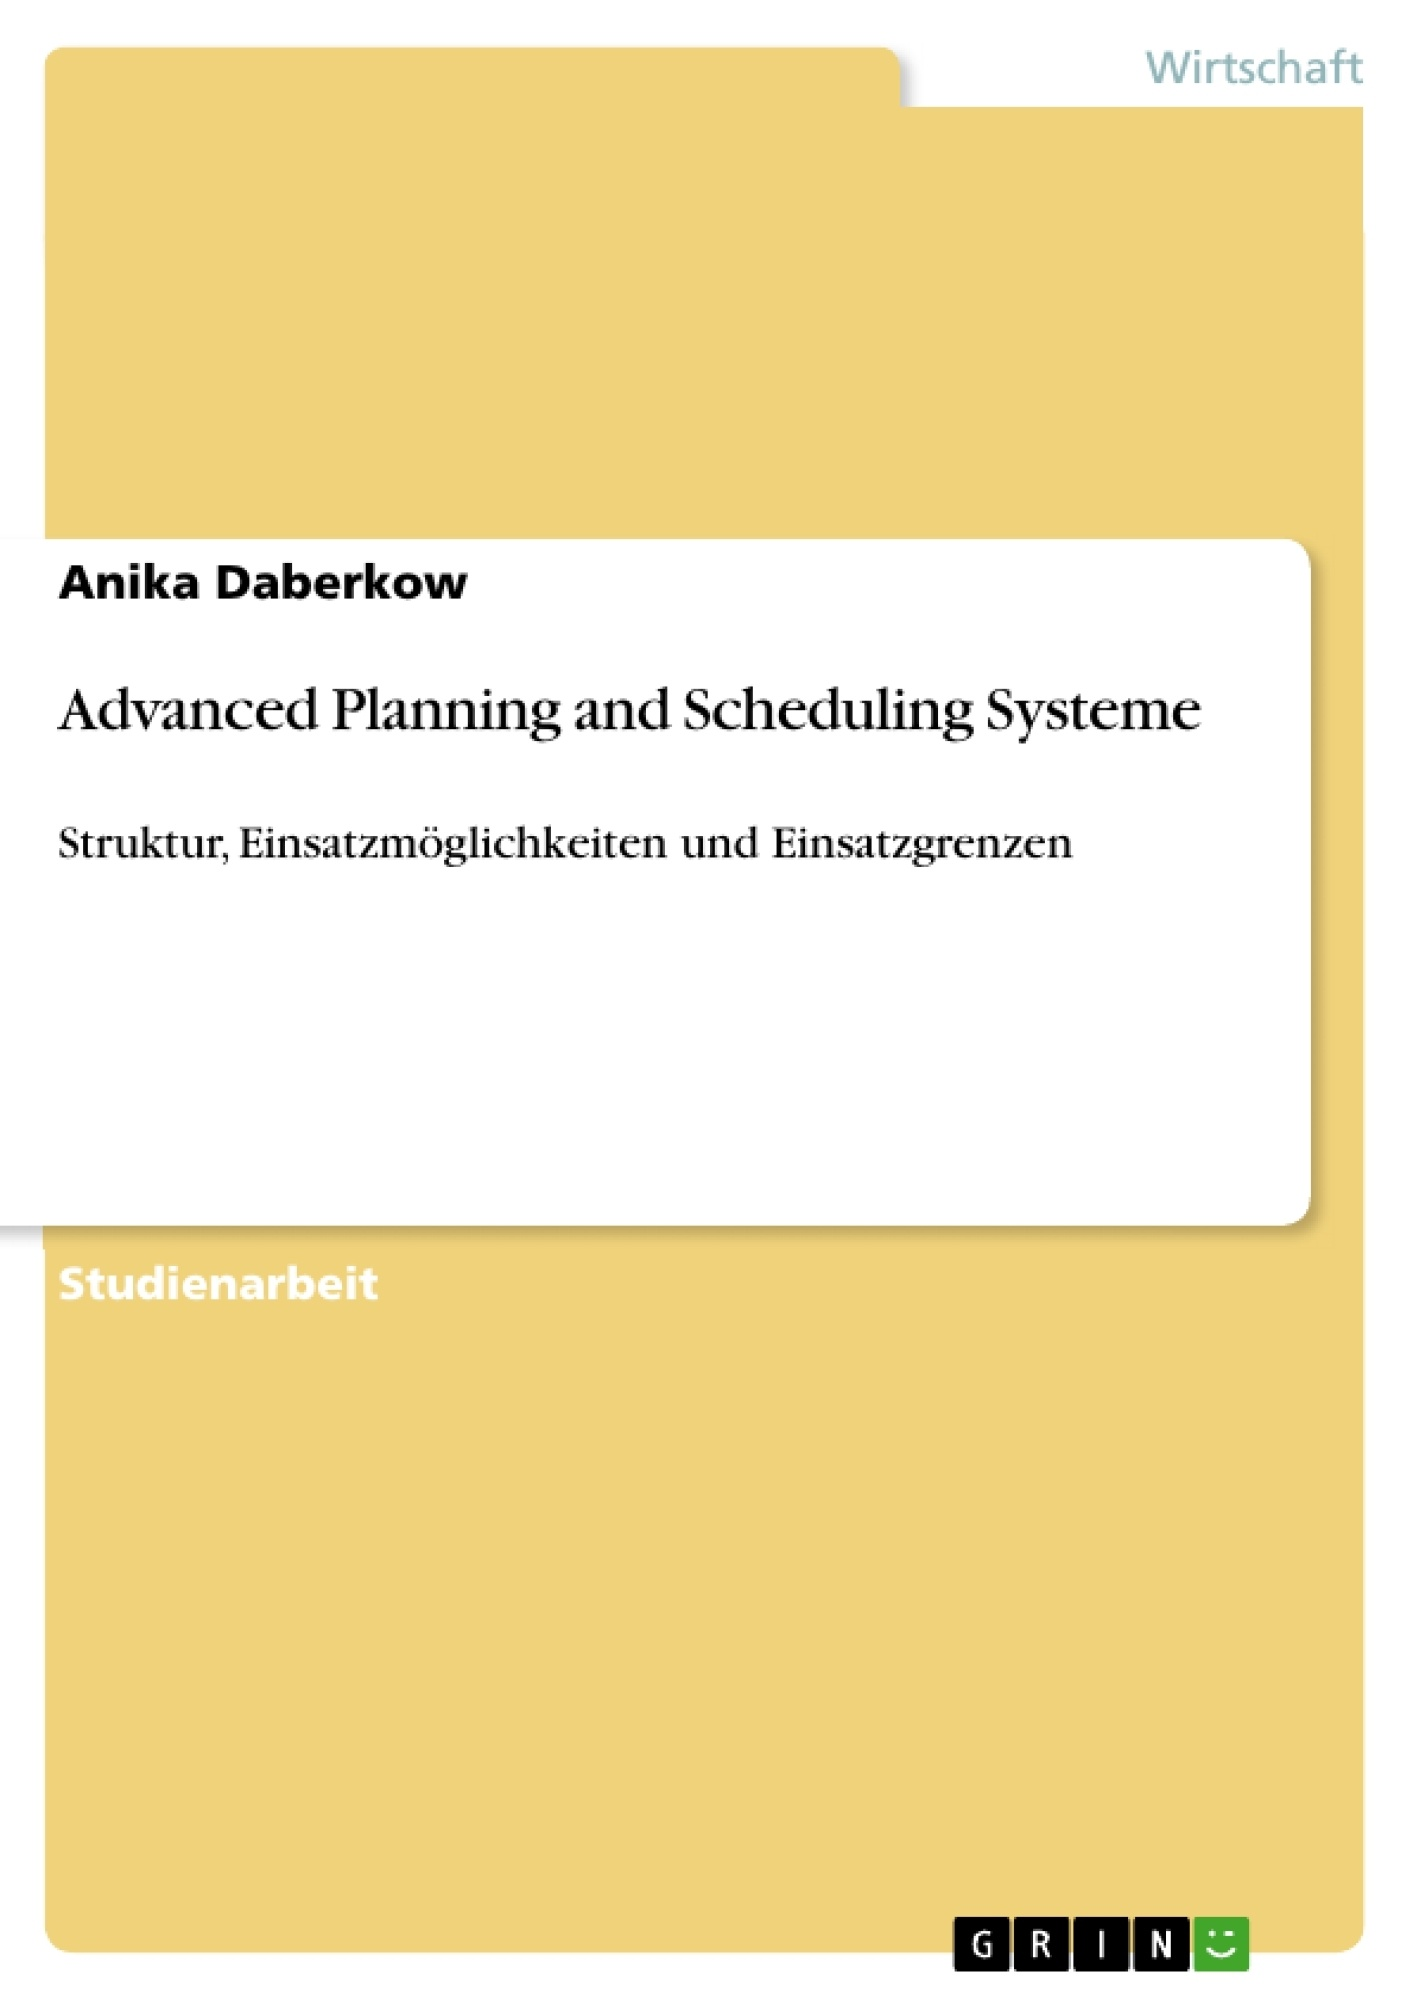 Titel: Advanced Planning and Scheduling Systeme